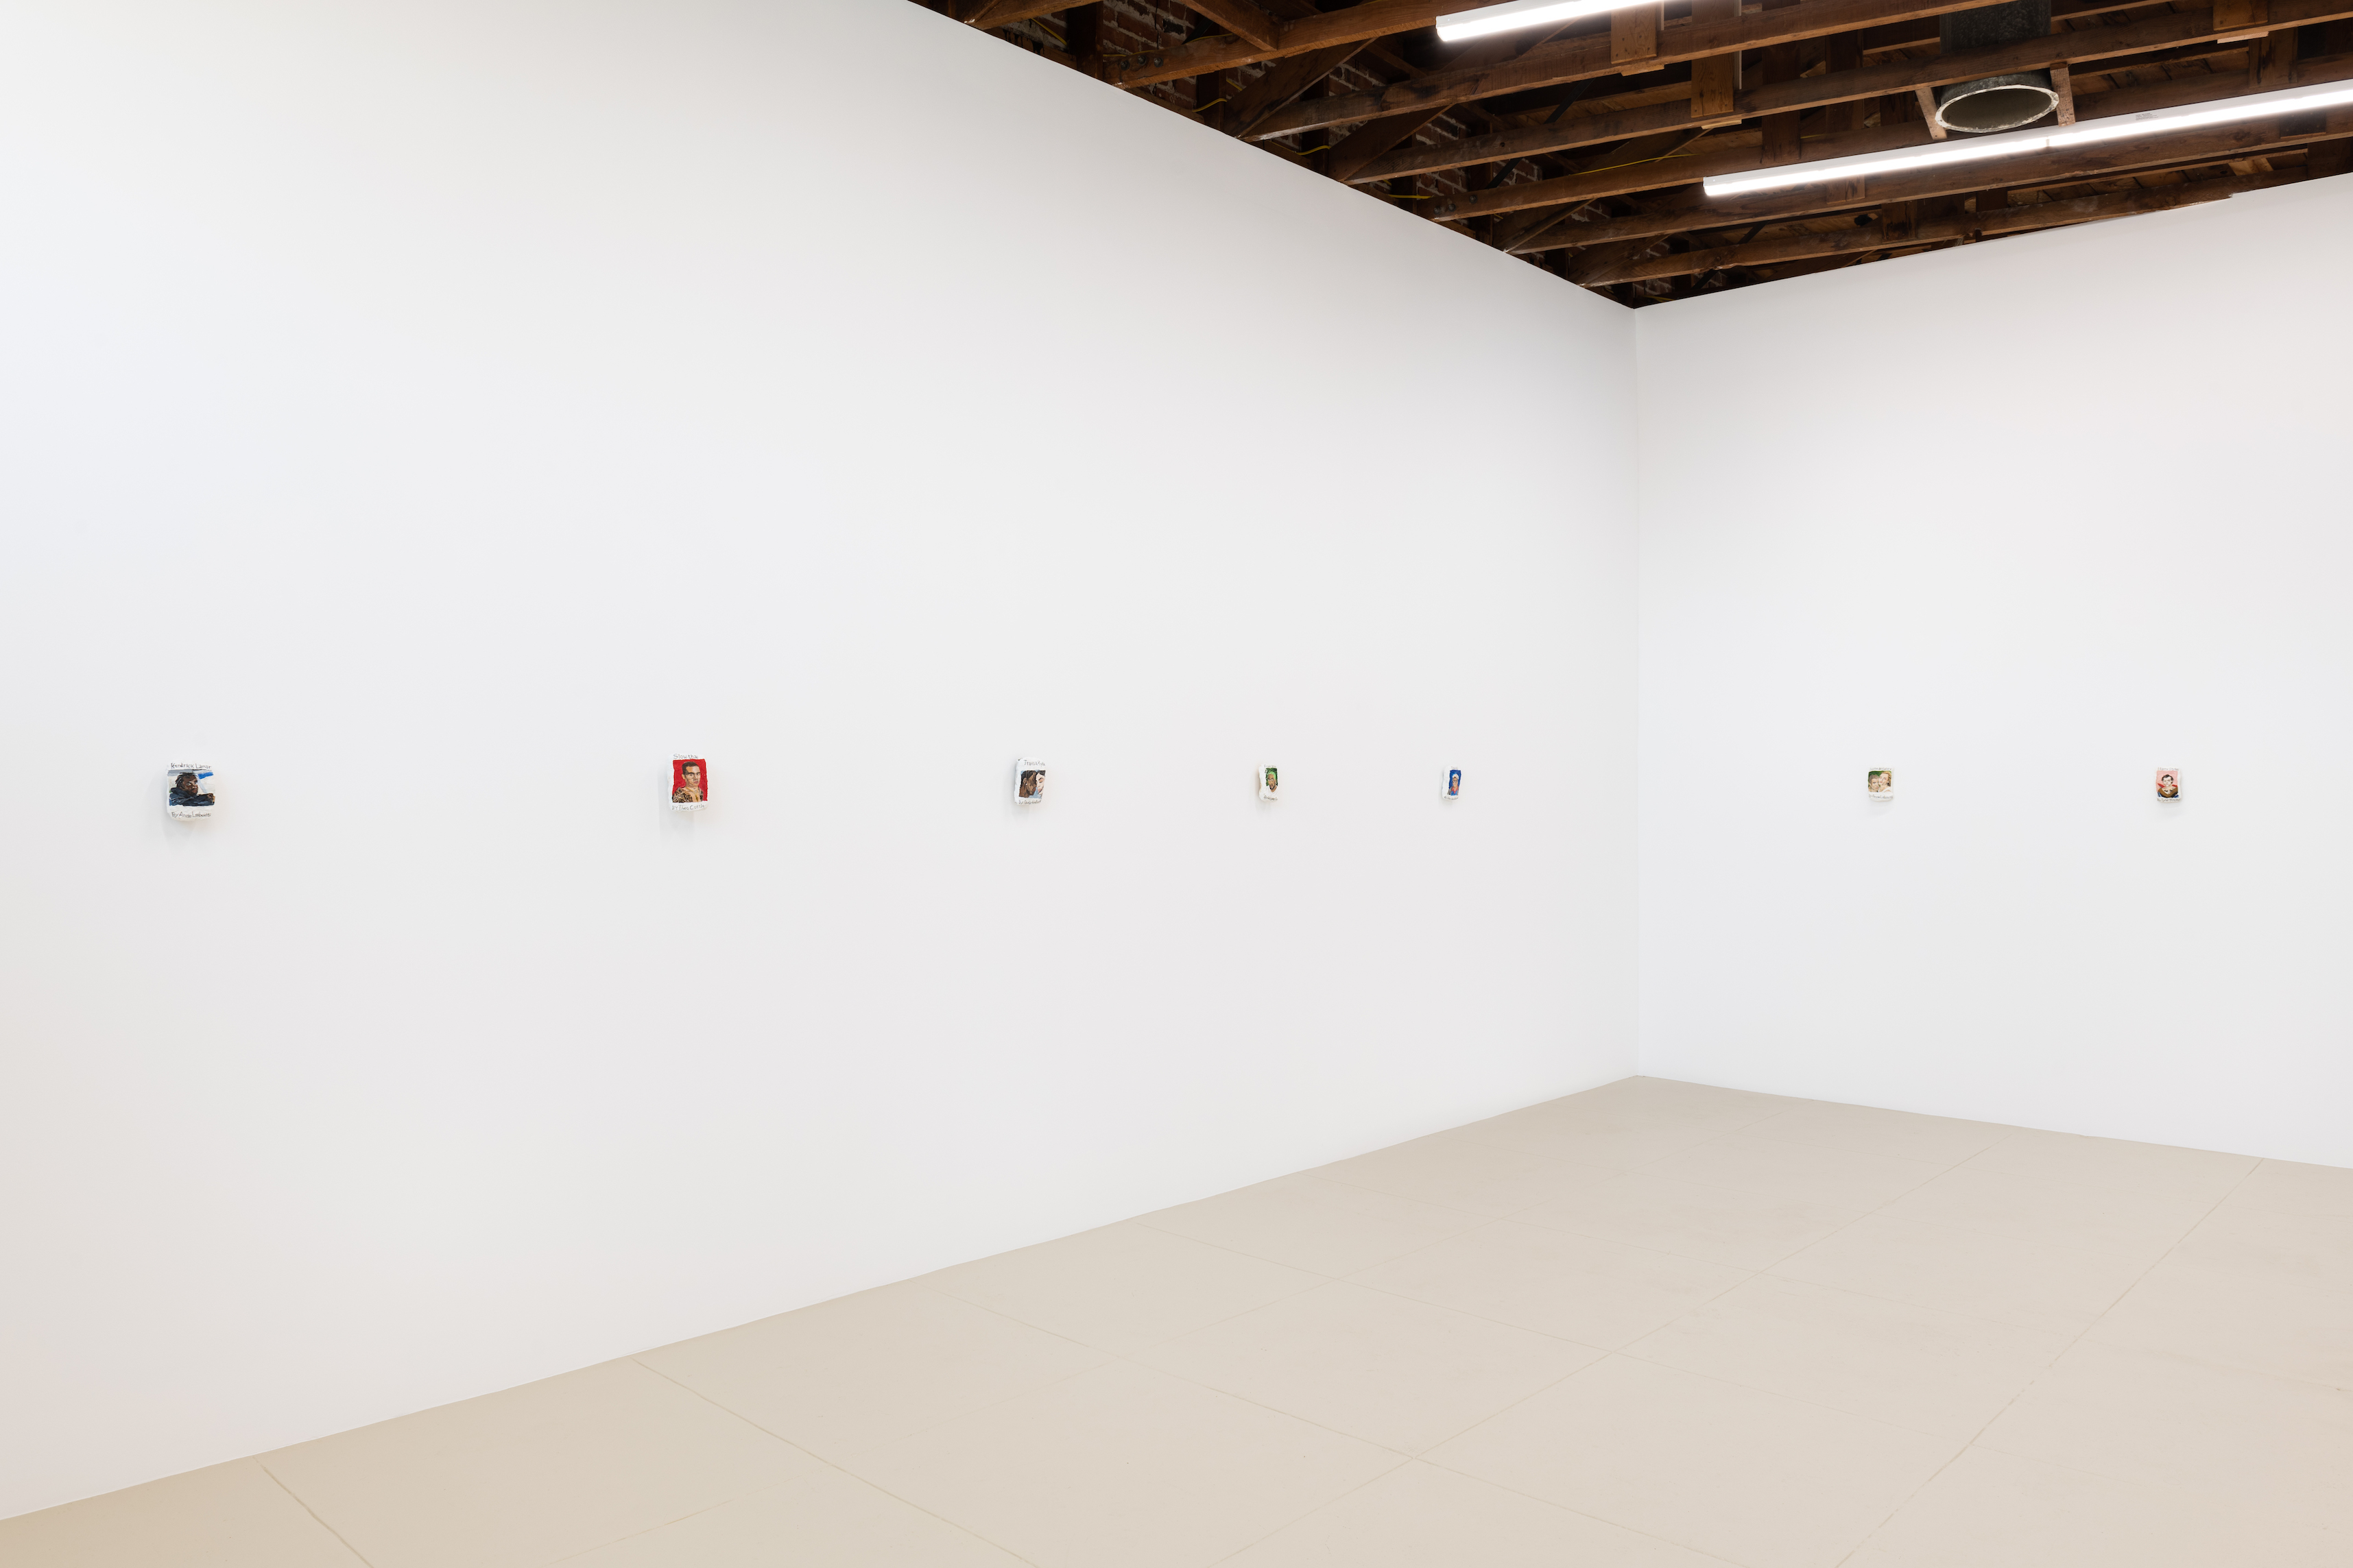 Installation View, Sophie Barber, Kim and Kanye kiss without tongues, Chris Sharp, LA, 2021